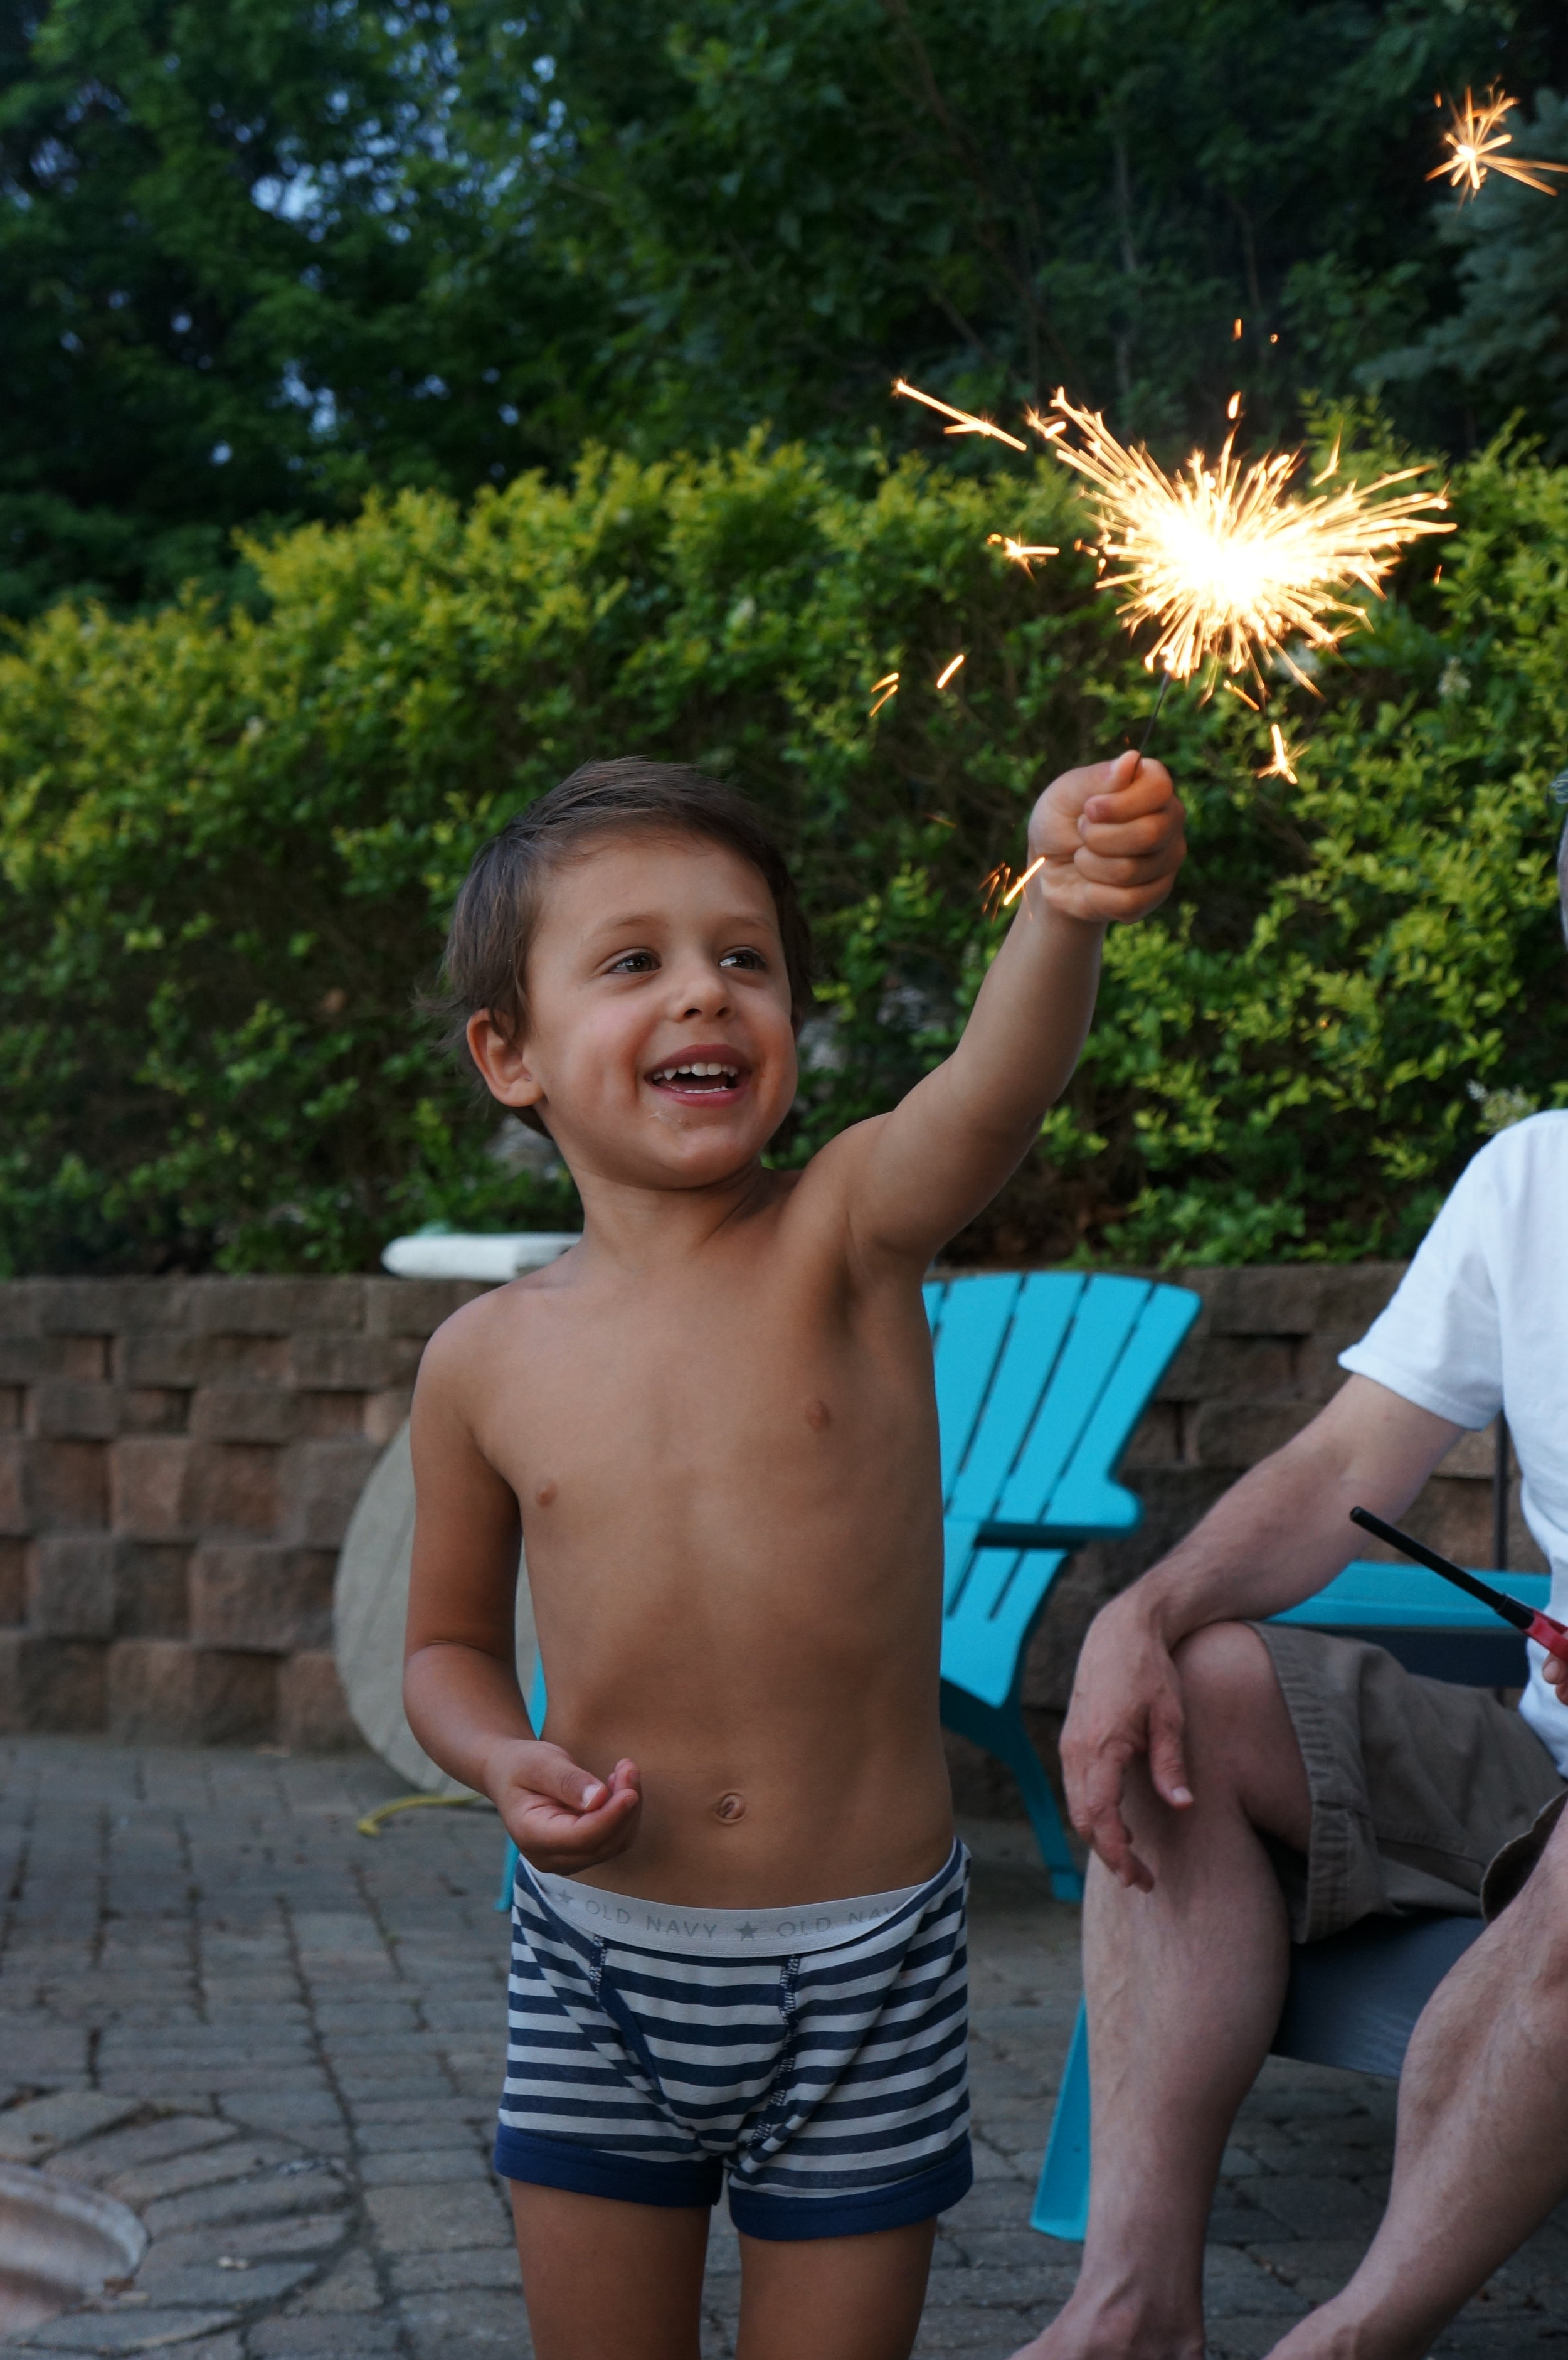 Bennett enjoying our 4th of July sparklers in undies. Classic.